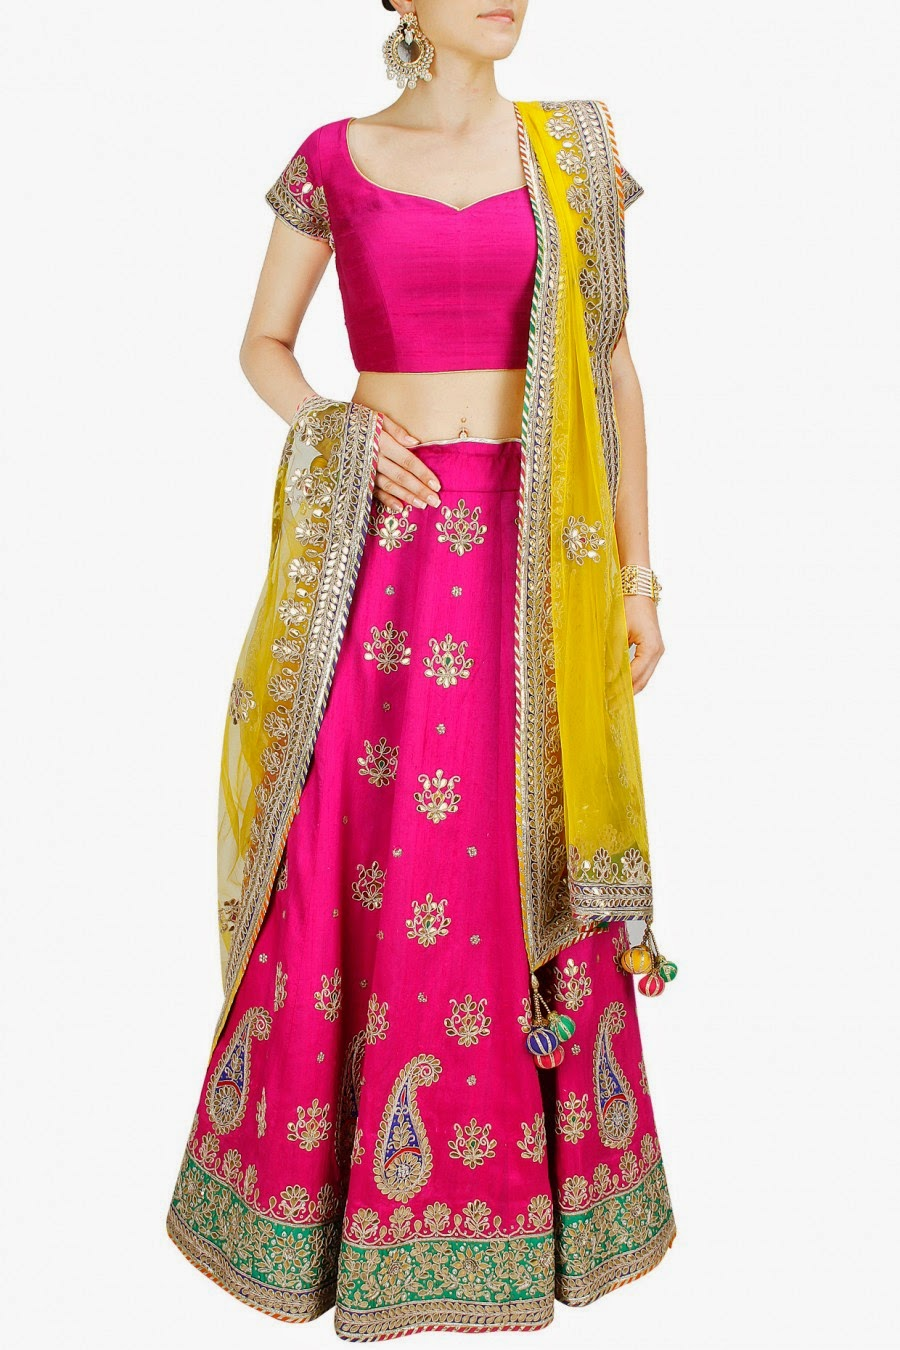 397fad86778ff5 Featuring a fuchsia raw silk lehenga with gota patti work in paisleys and  floral motifs pattern and contrast embroidered border.